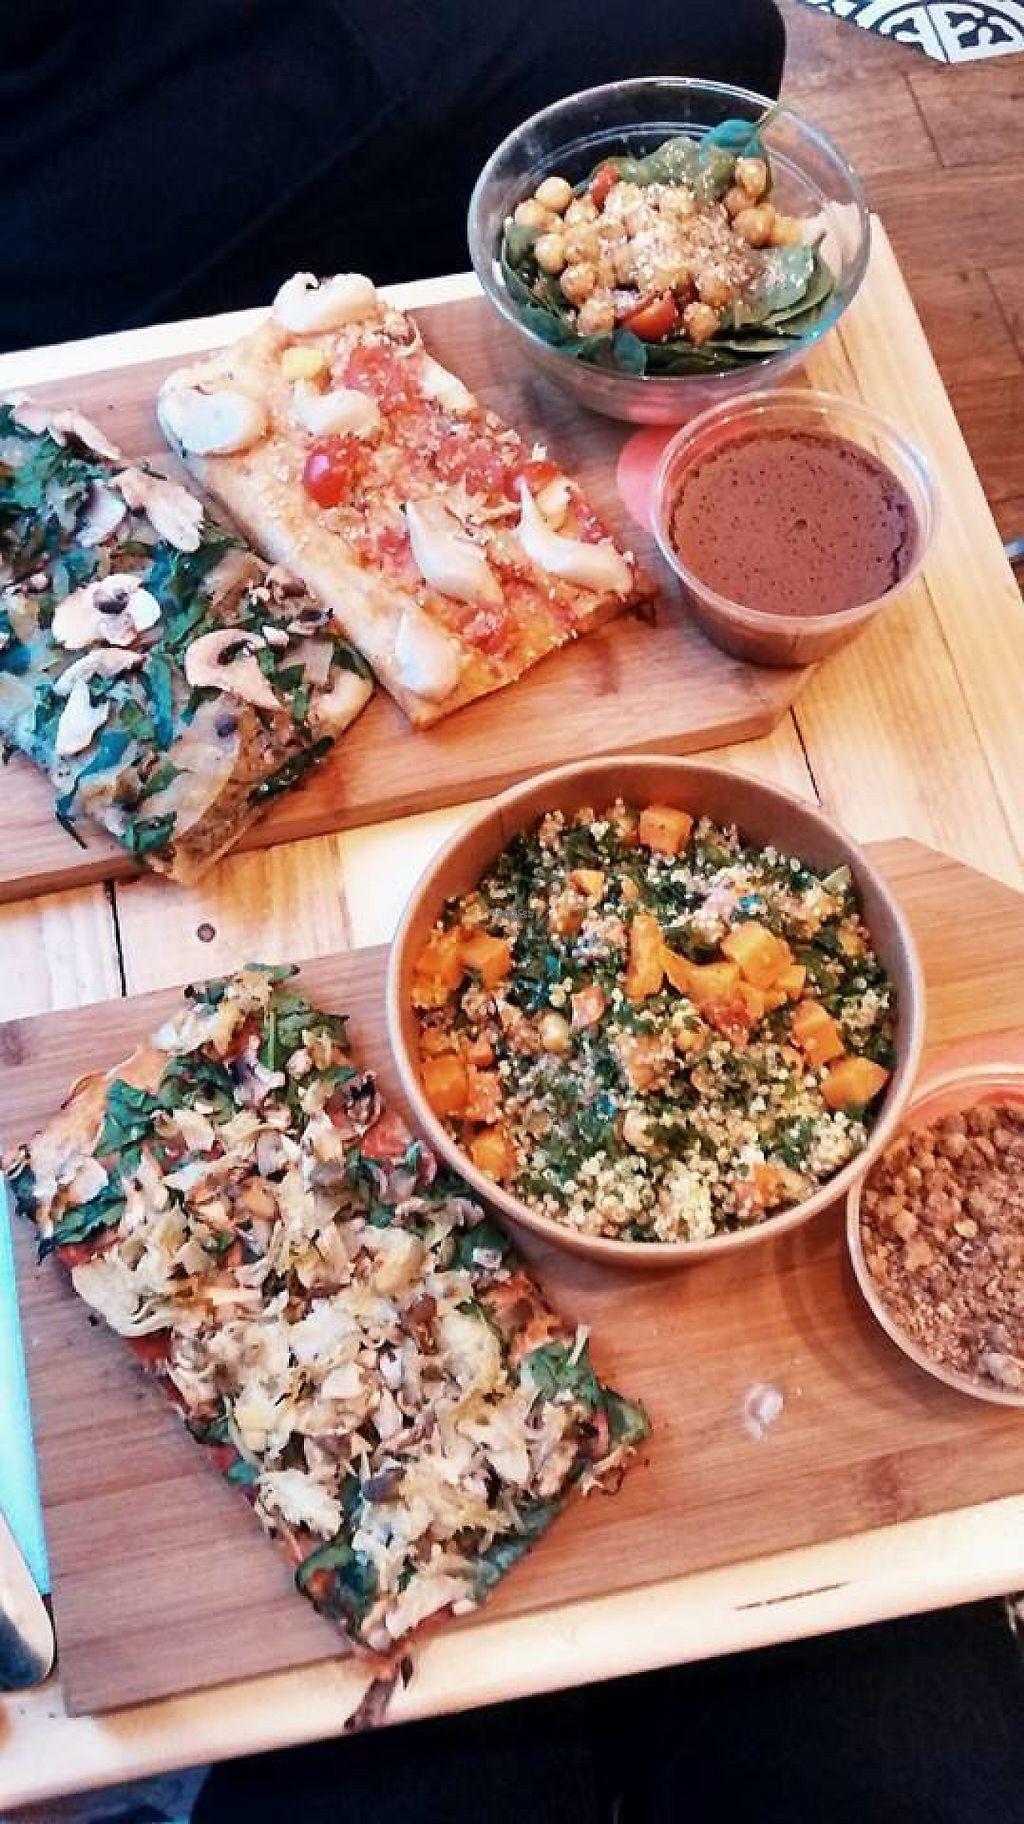 """Photo of Hank Vegan Pizza  by <a href=""""/members/profile/BlisterBlue"""">BlisterBlue</a> <br/>Yummy pizzas <br/> January 10, 2017  - <a href='/contact/abuse/image/79001/210322'>Report</a>"""